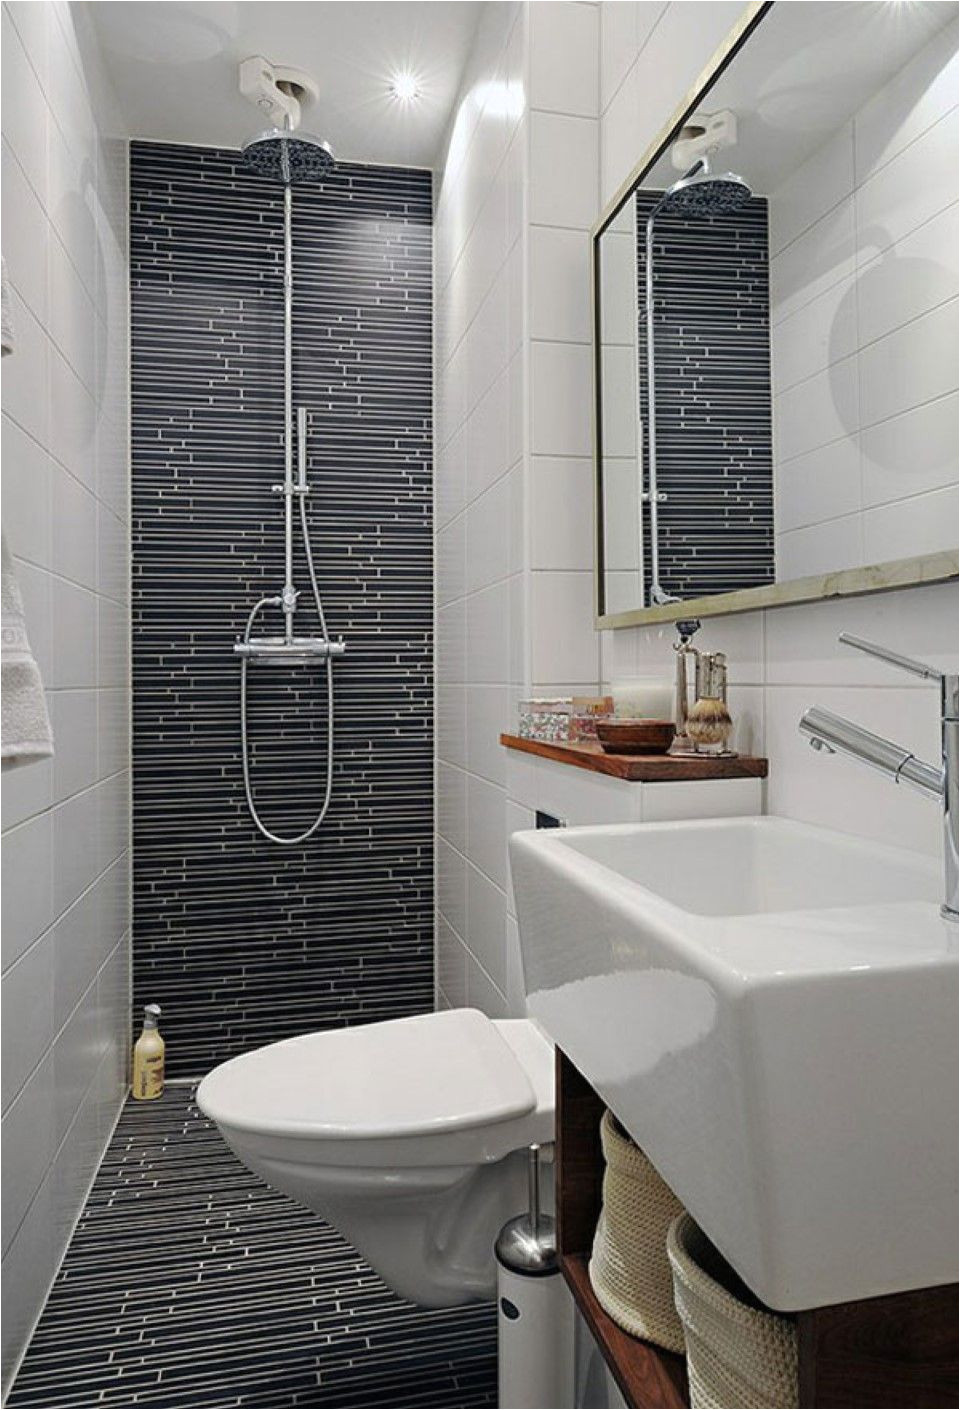 doorless shower ideas in cool small bathroom design with floating toilet feat wall hung sink and black floor